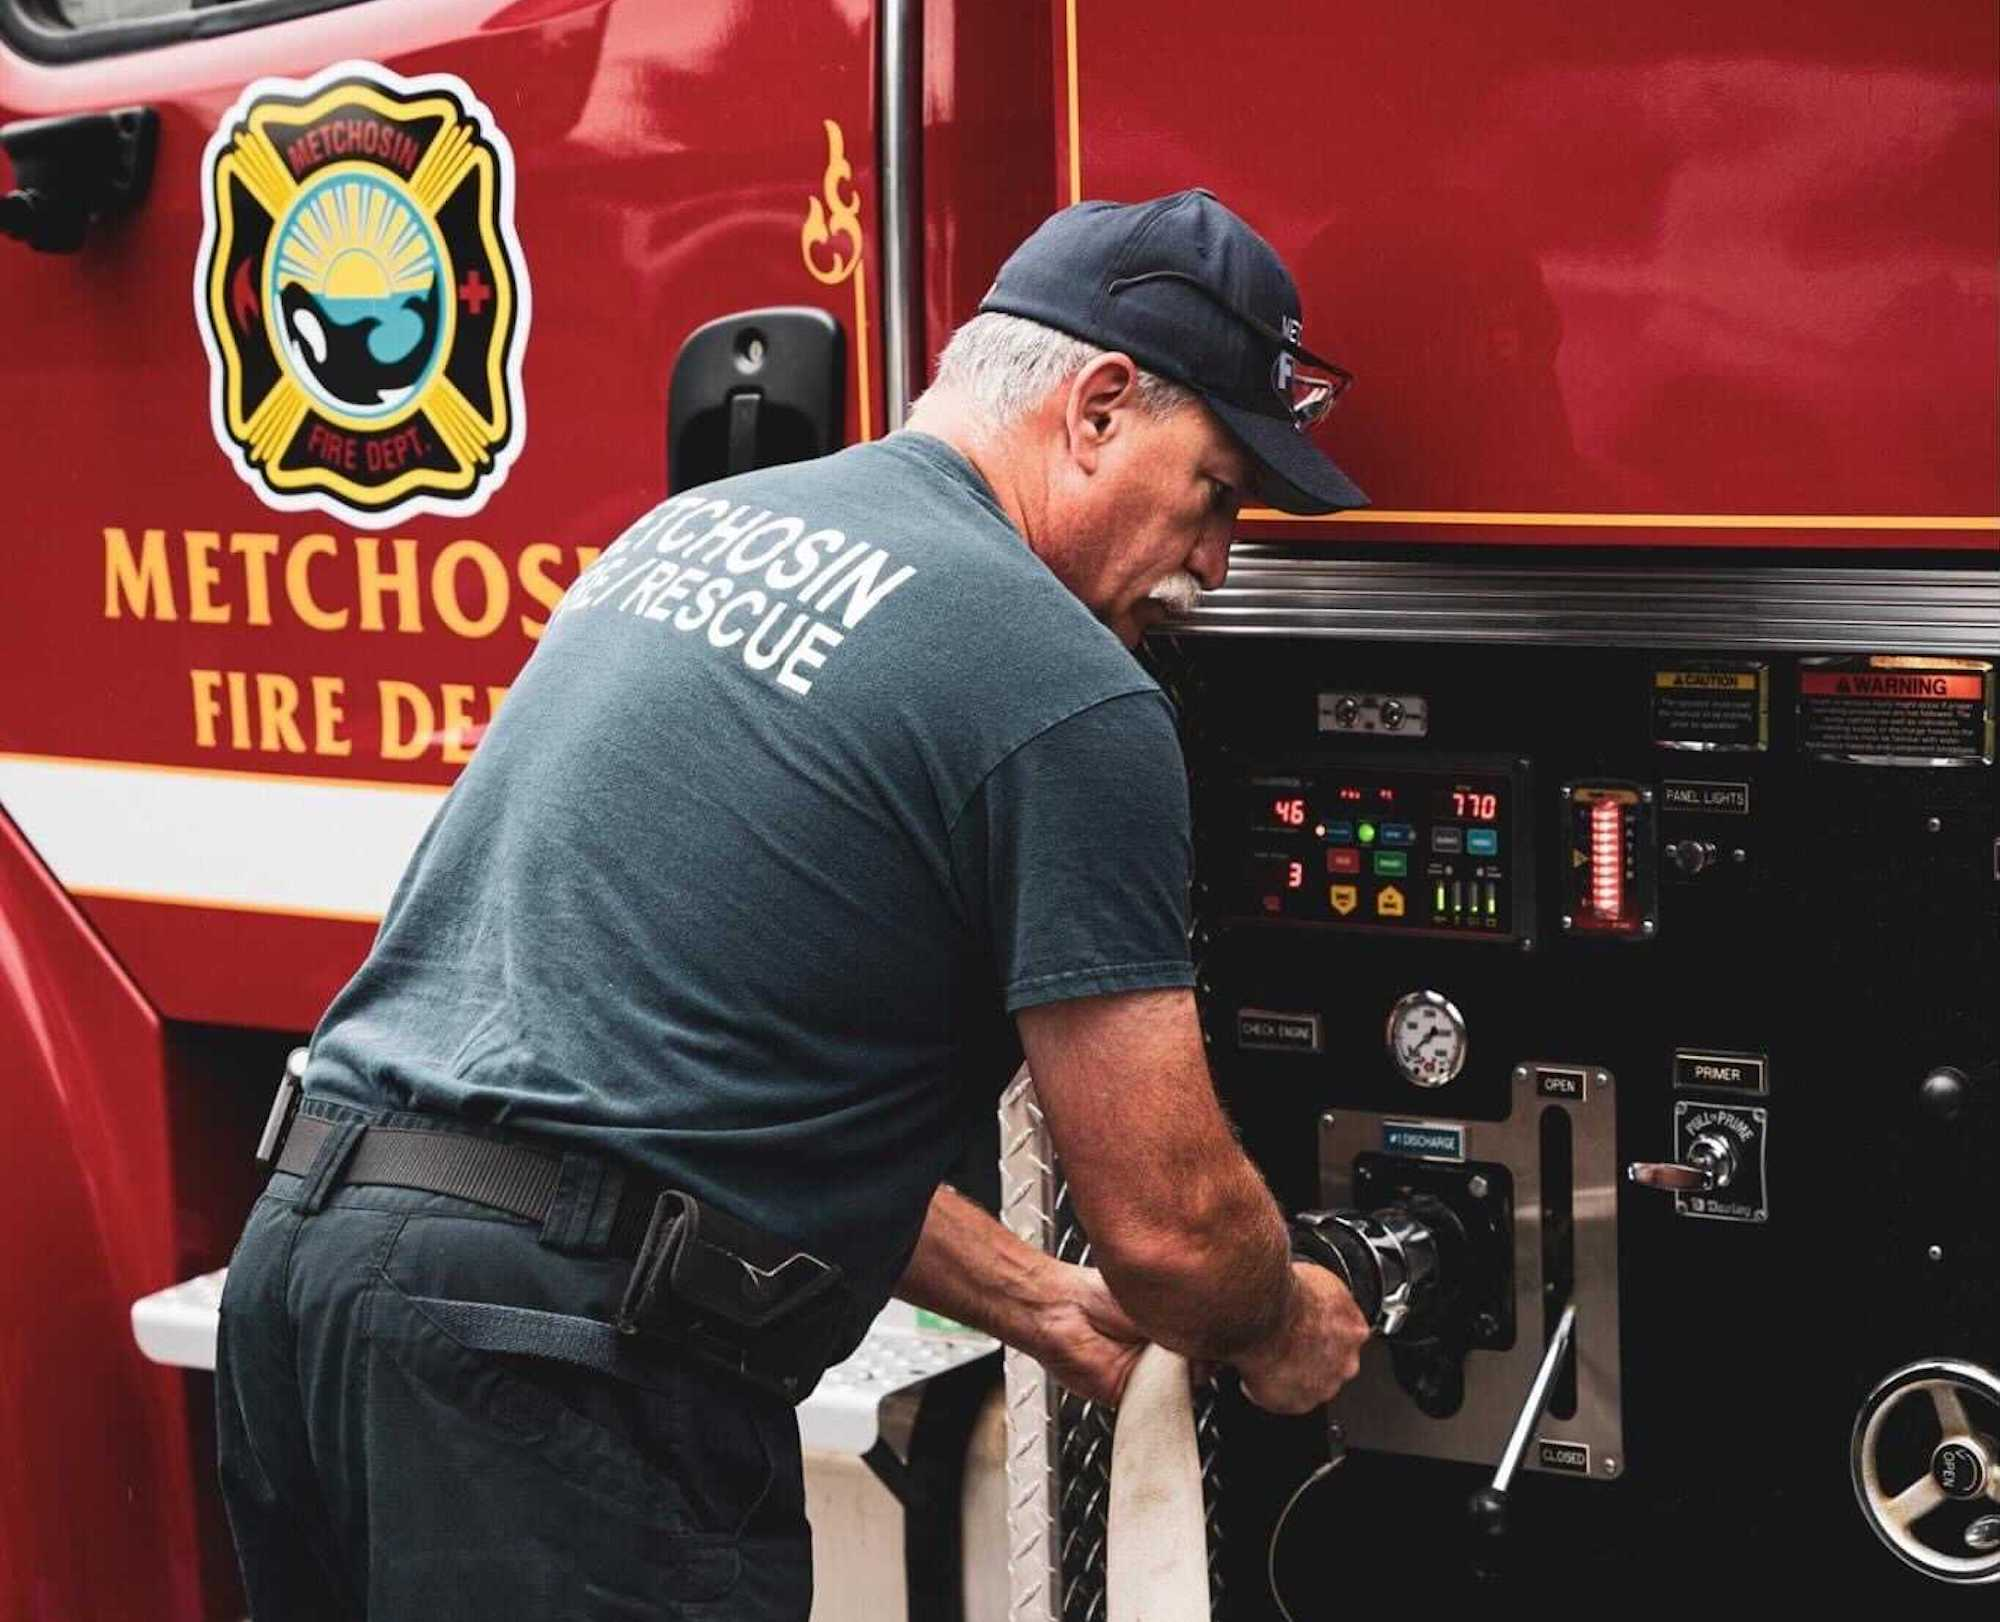 Metchosin's fire department doesn't hear about all emergency calls within their area anymore. Here's why